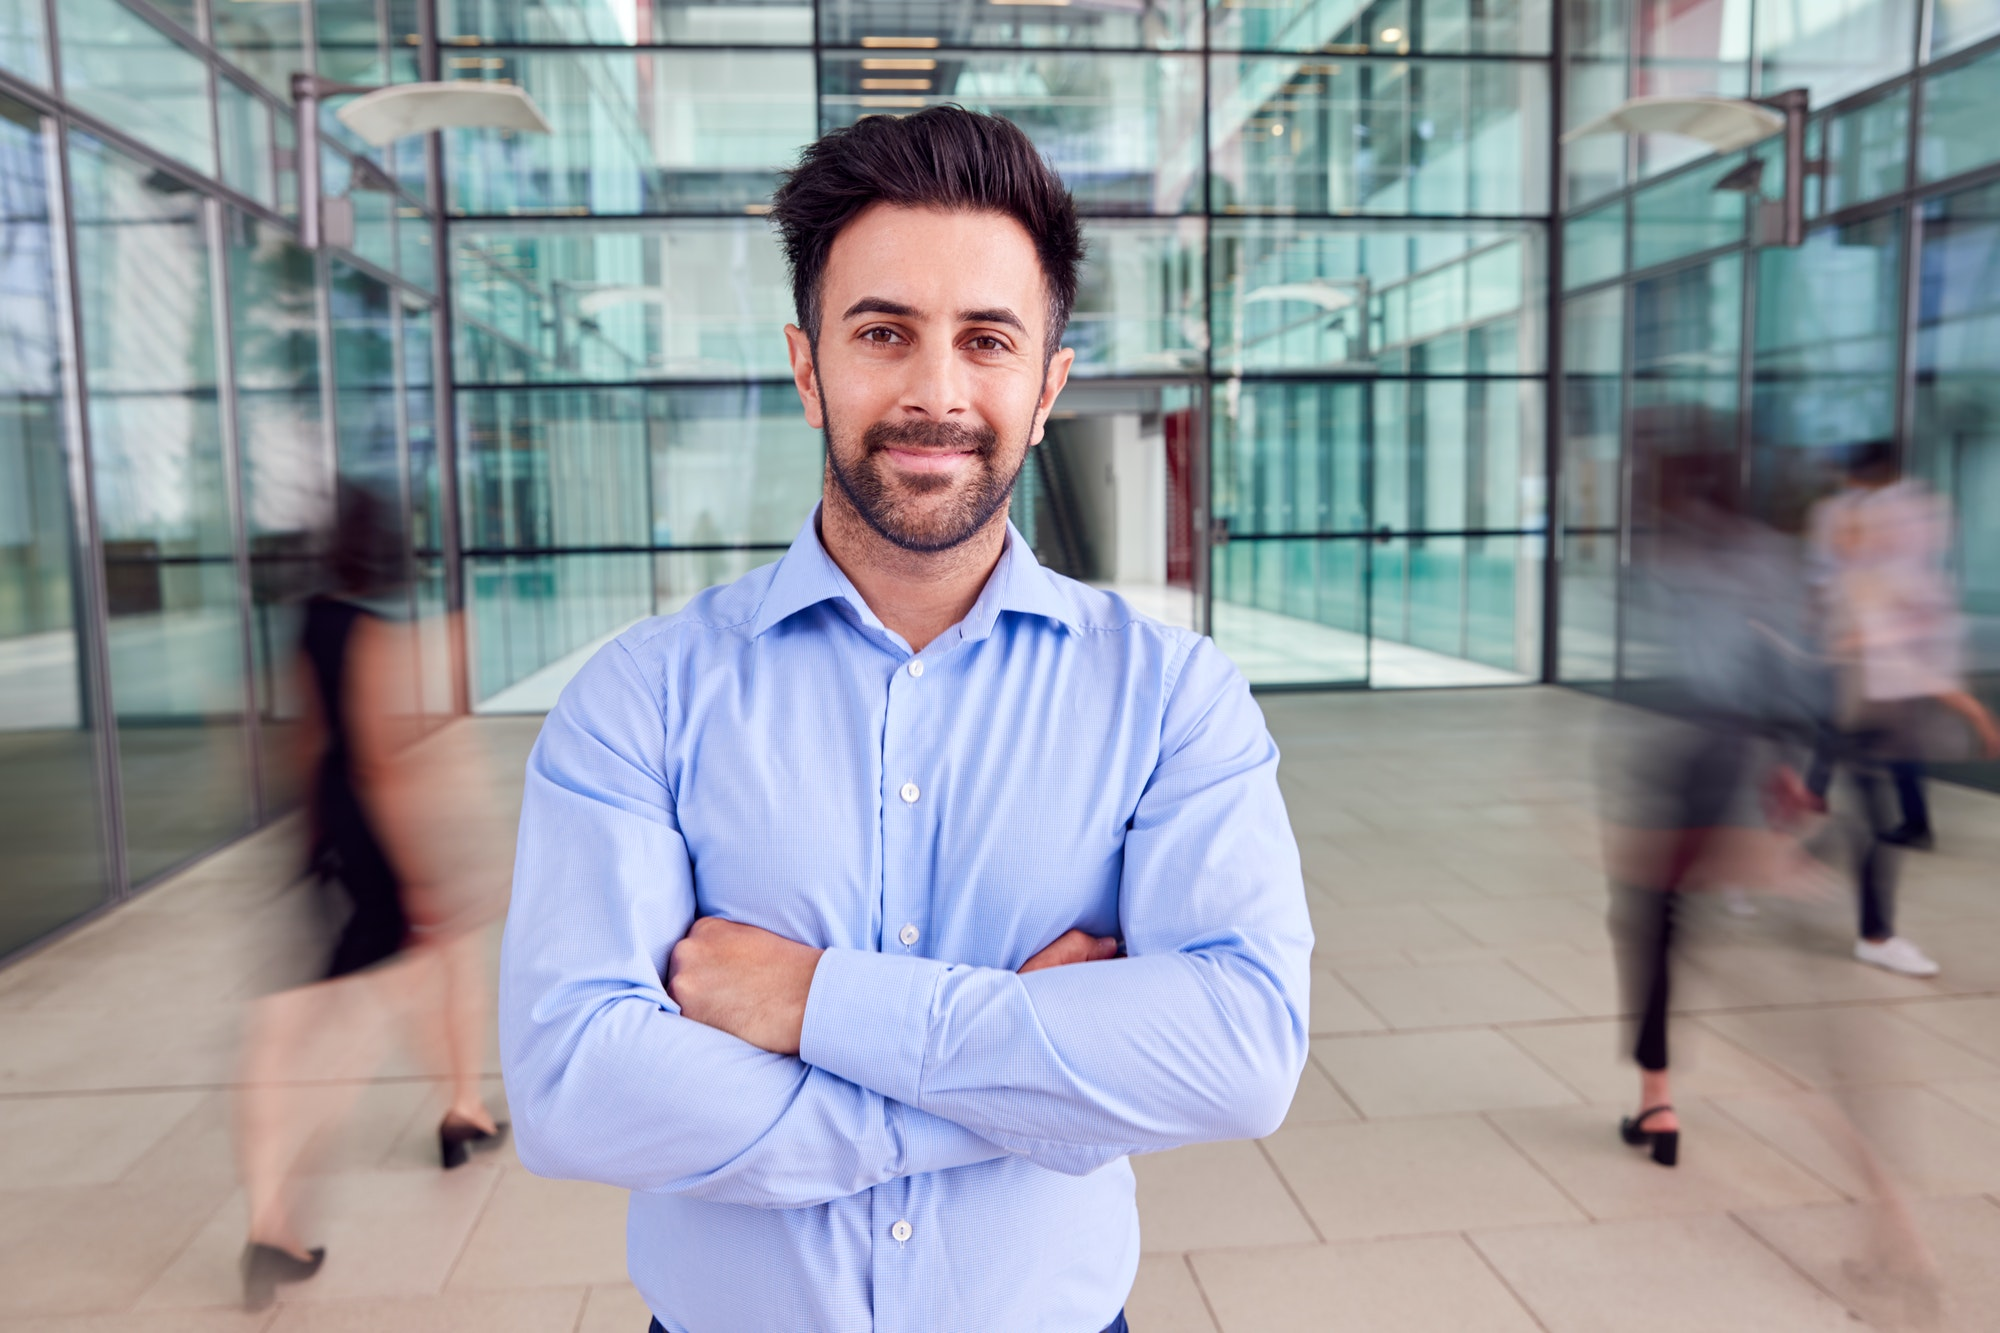 Portrait Of Businessman With Crossed Arms Standing In Lobby Of Busy Modern Office